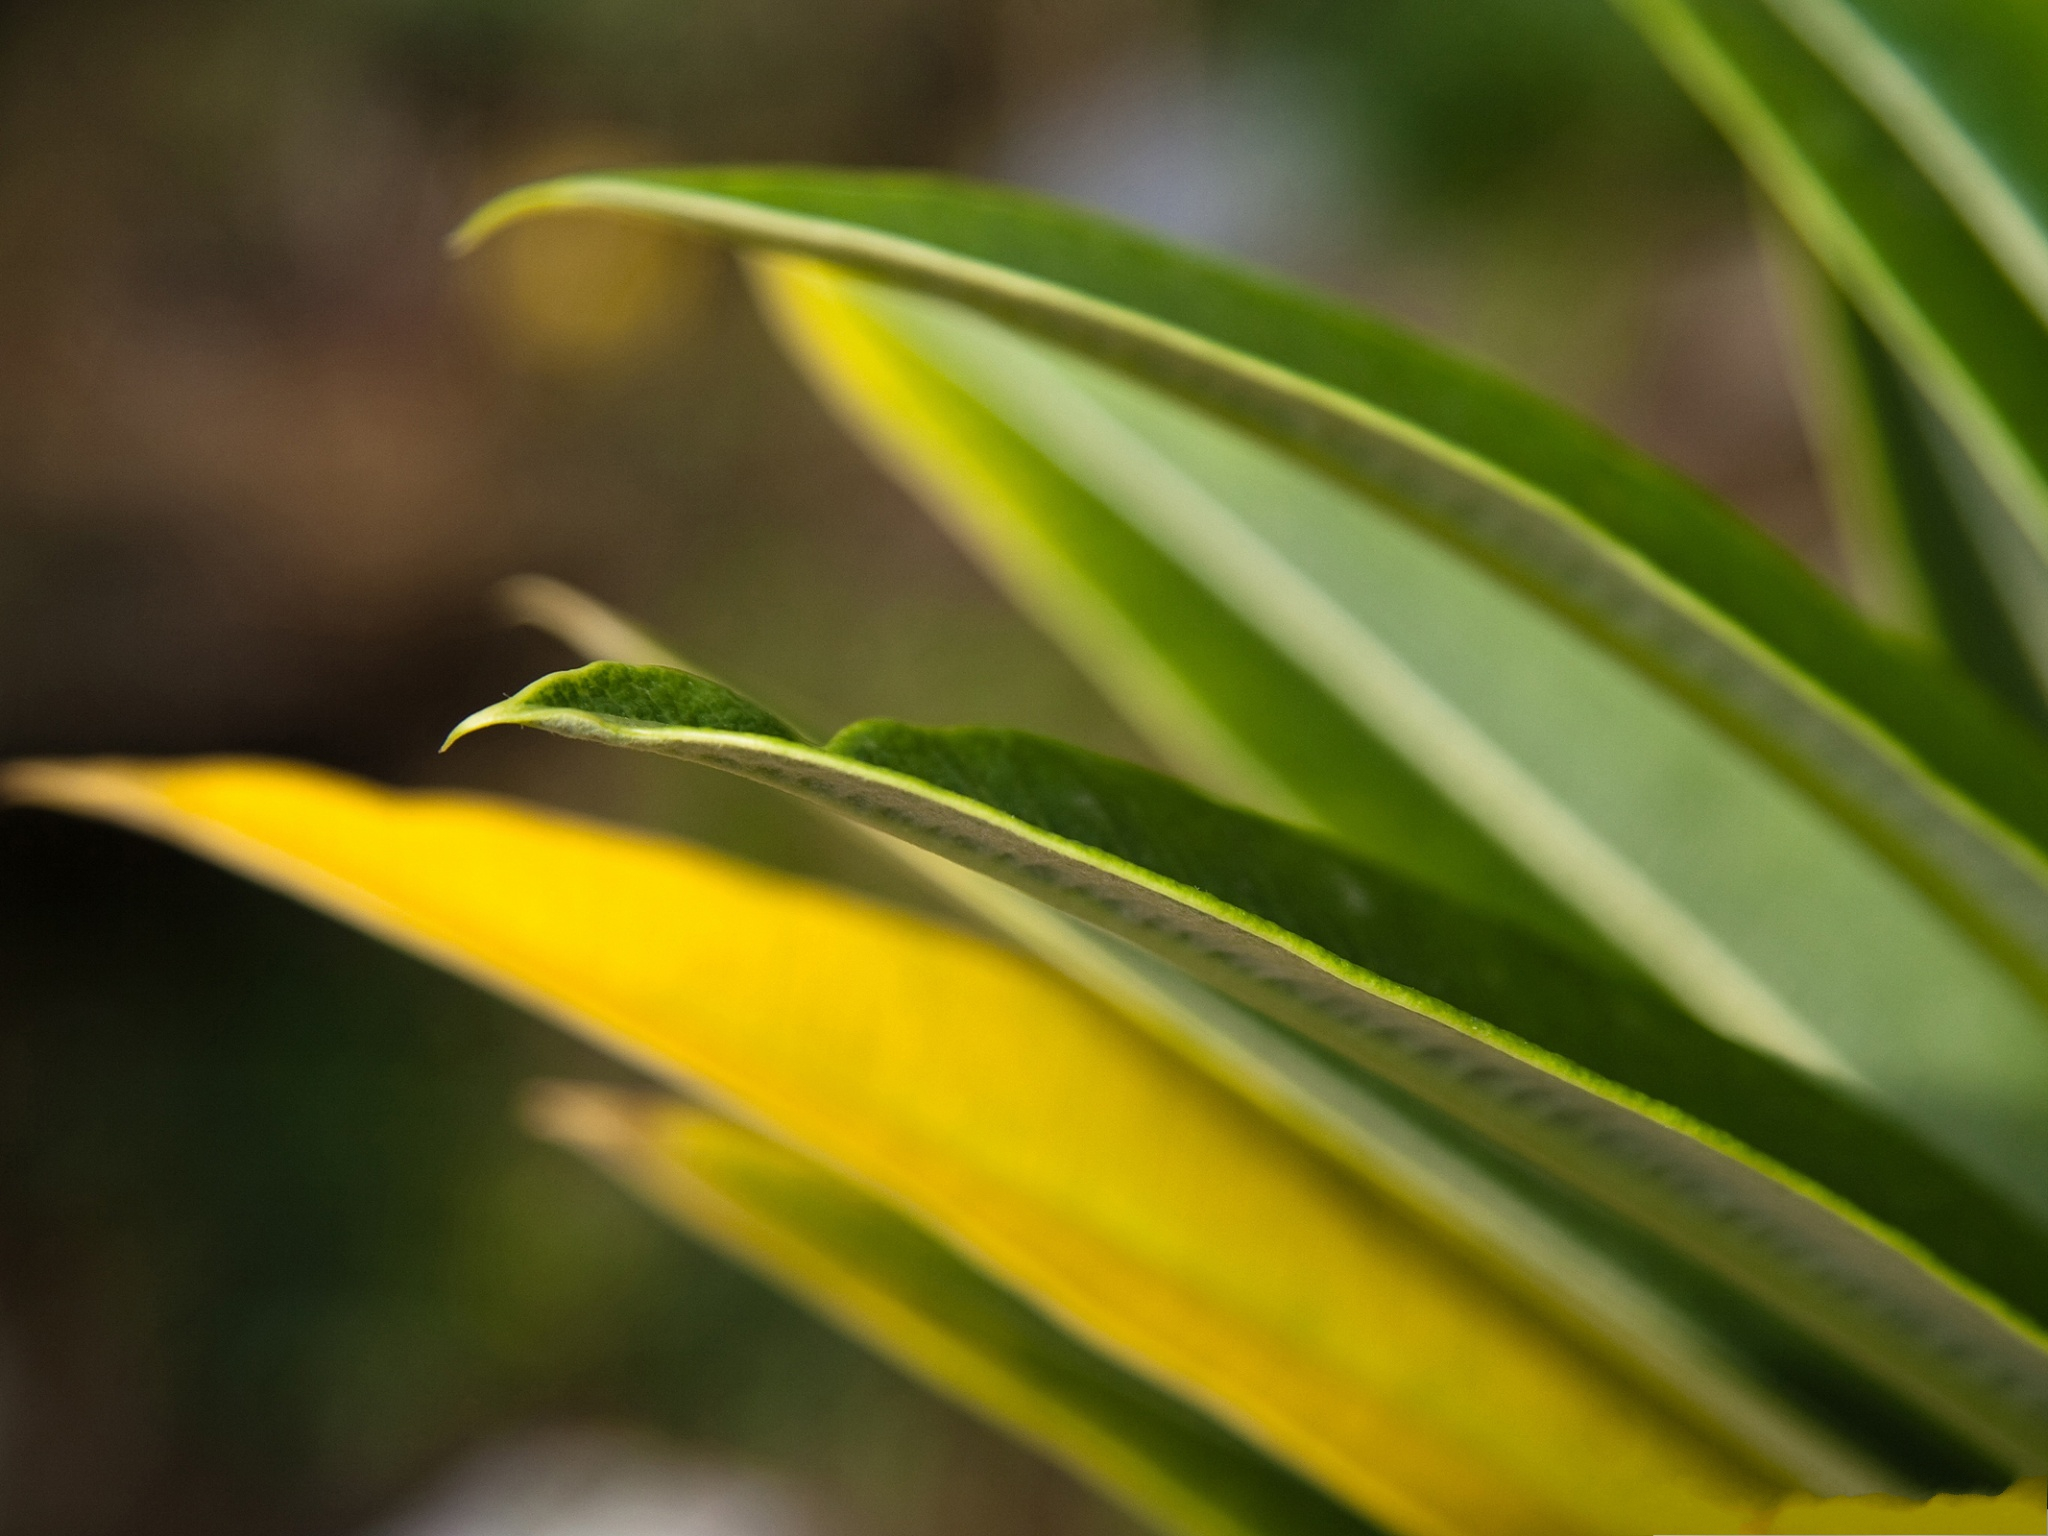 click to free download the wallpaper--Plant Leaves Bokeh, Green Plants Curled Up at the Edge, Macro Focus 2048X1536 free wallpaper download